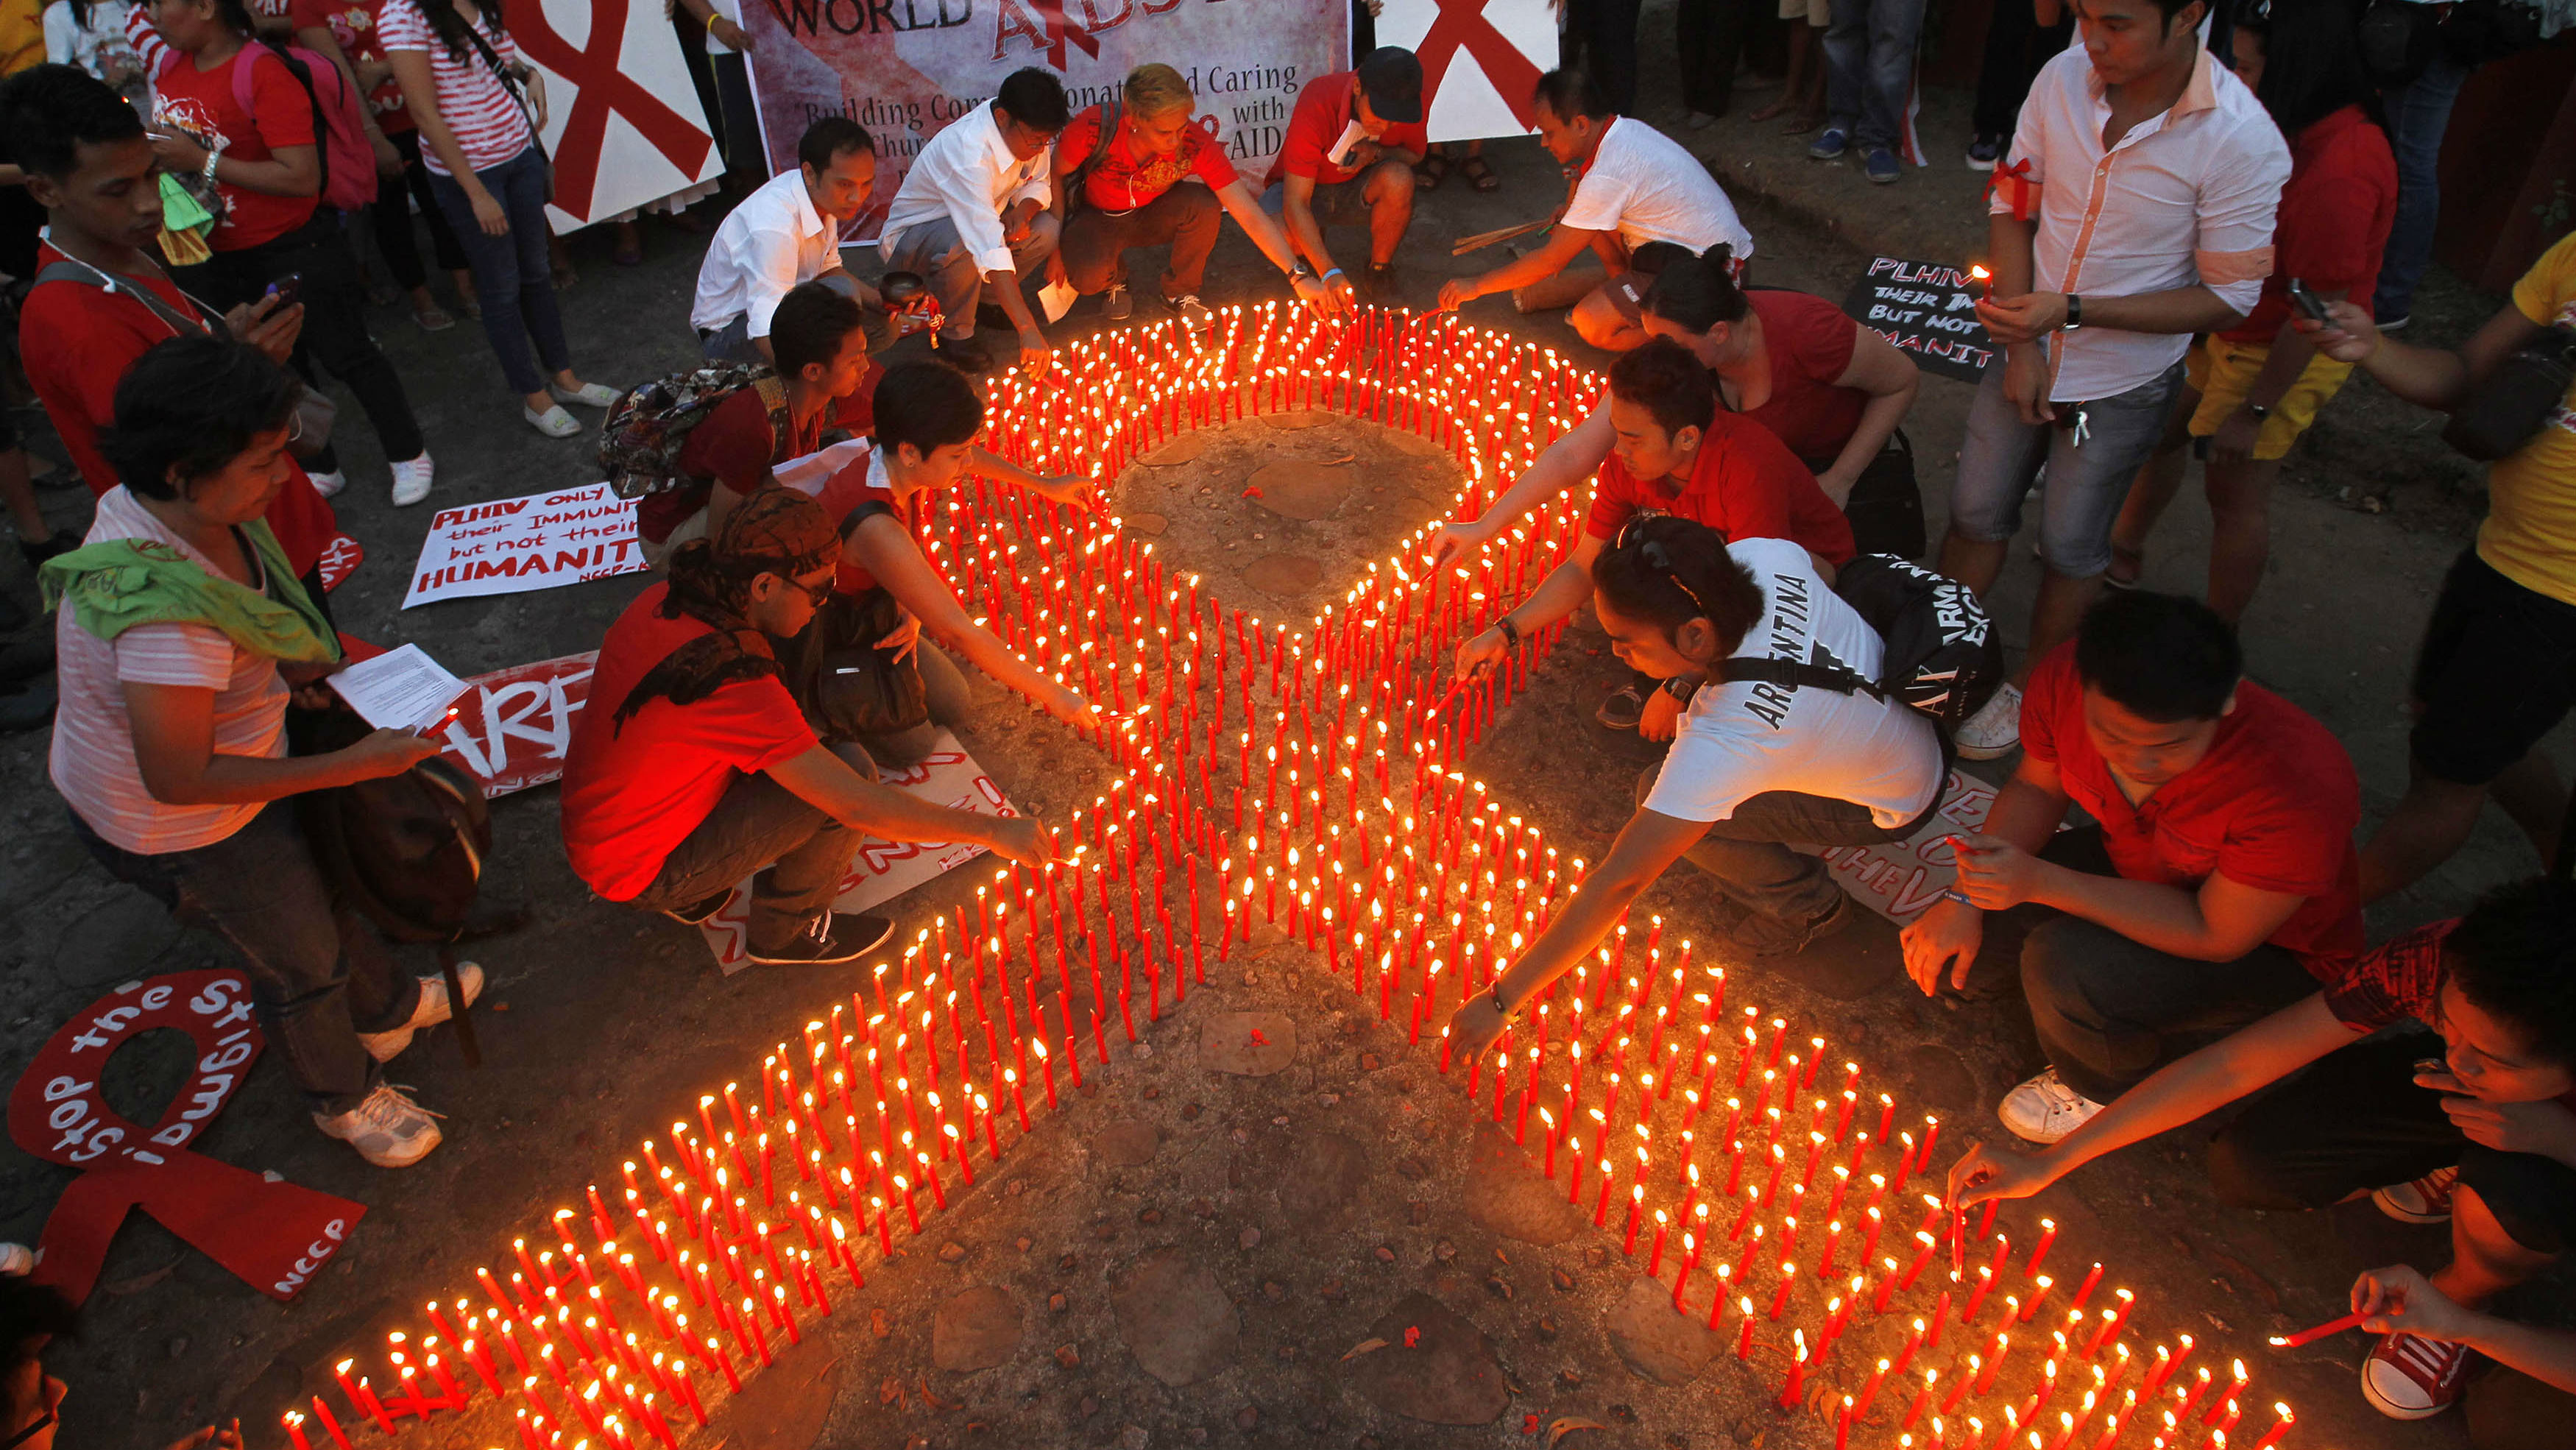 An AIDS ribbon made out of candles with people gathered around it.